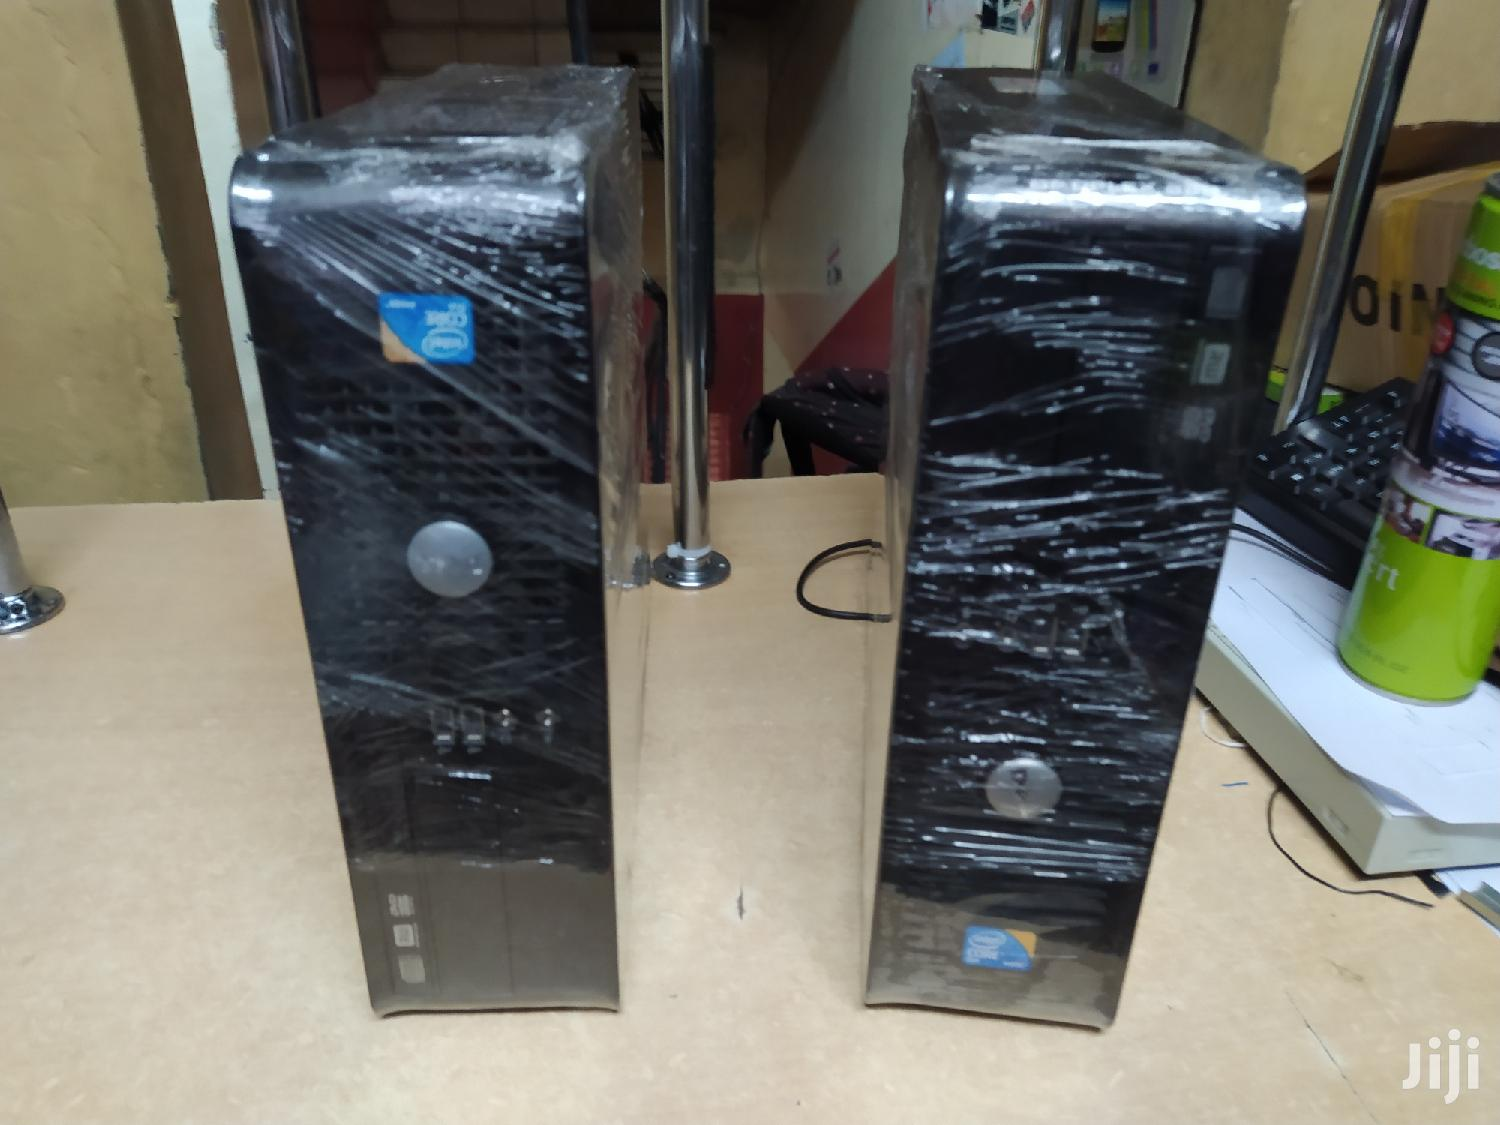 New Desktop Computer Dell 2GB Intel Core 2 Duo HDD 250GB | Laptops & Computers for sale in Nairobi Central, Nairobi, Kenya